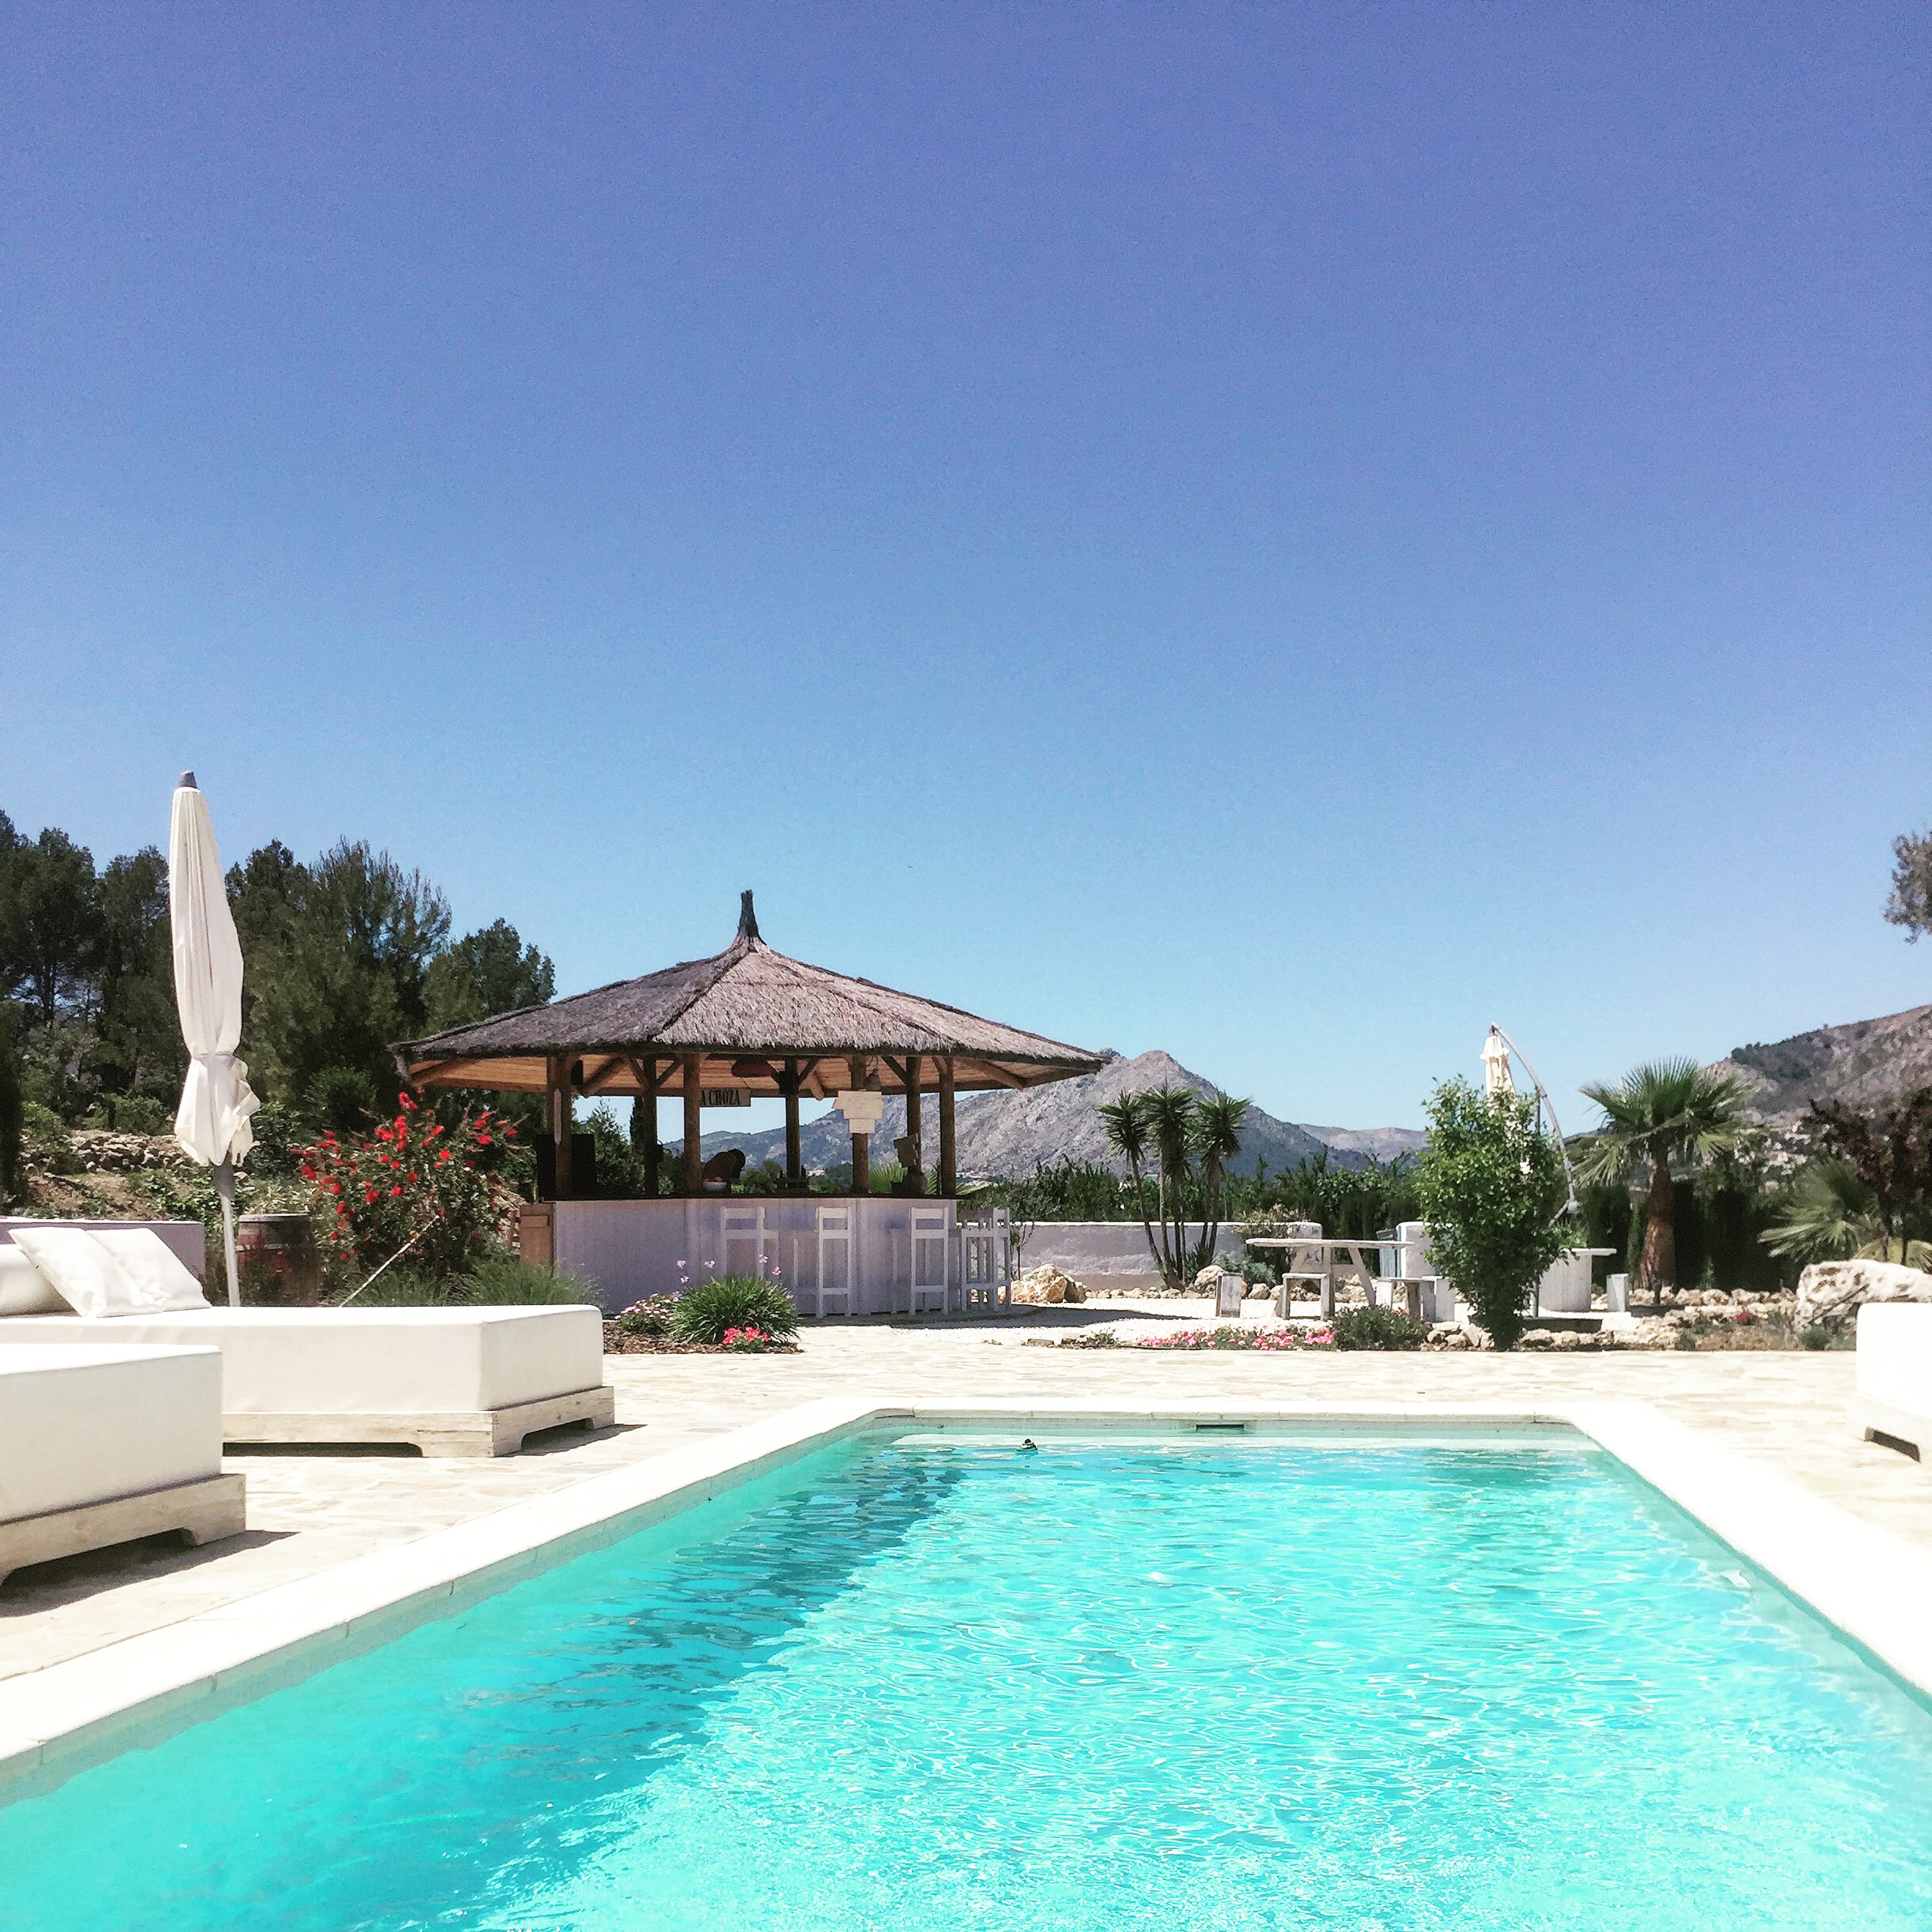 The beautiful pool & mountain view from Cuatre Finques  http://www.cuatrefinques.com